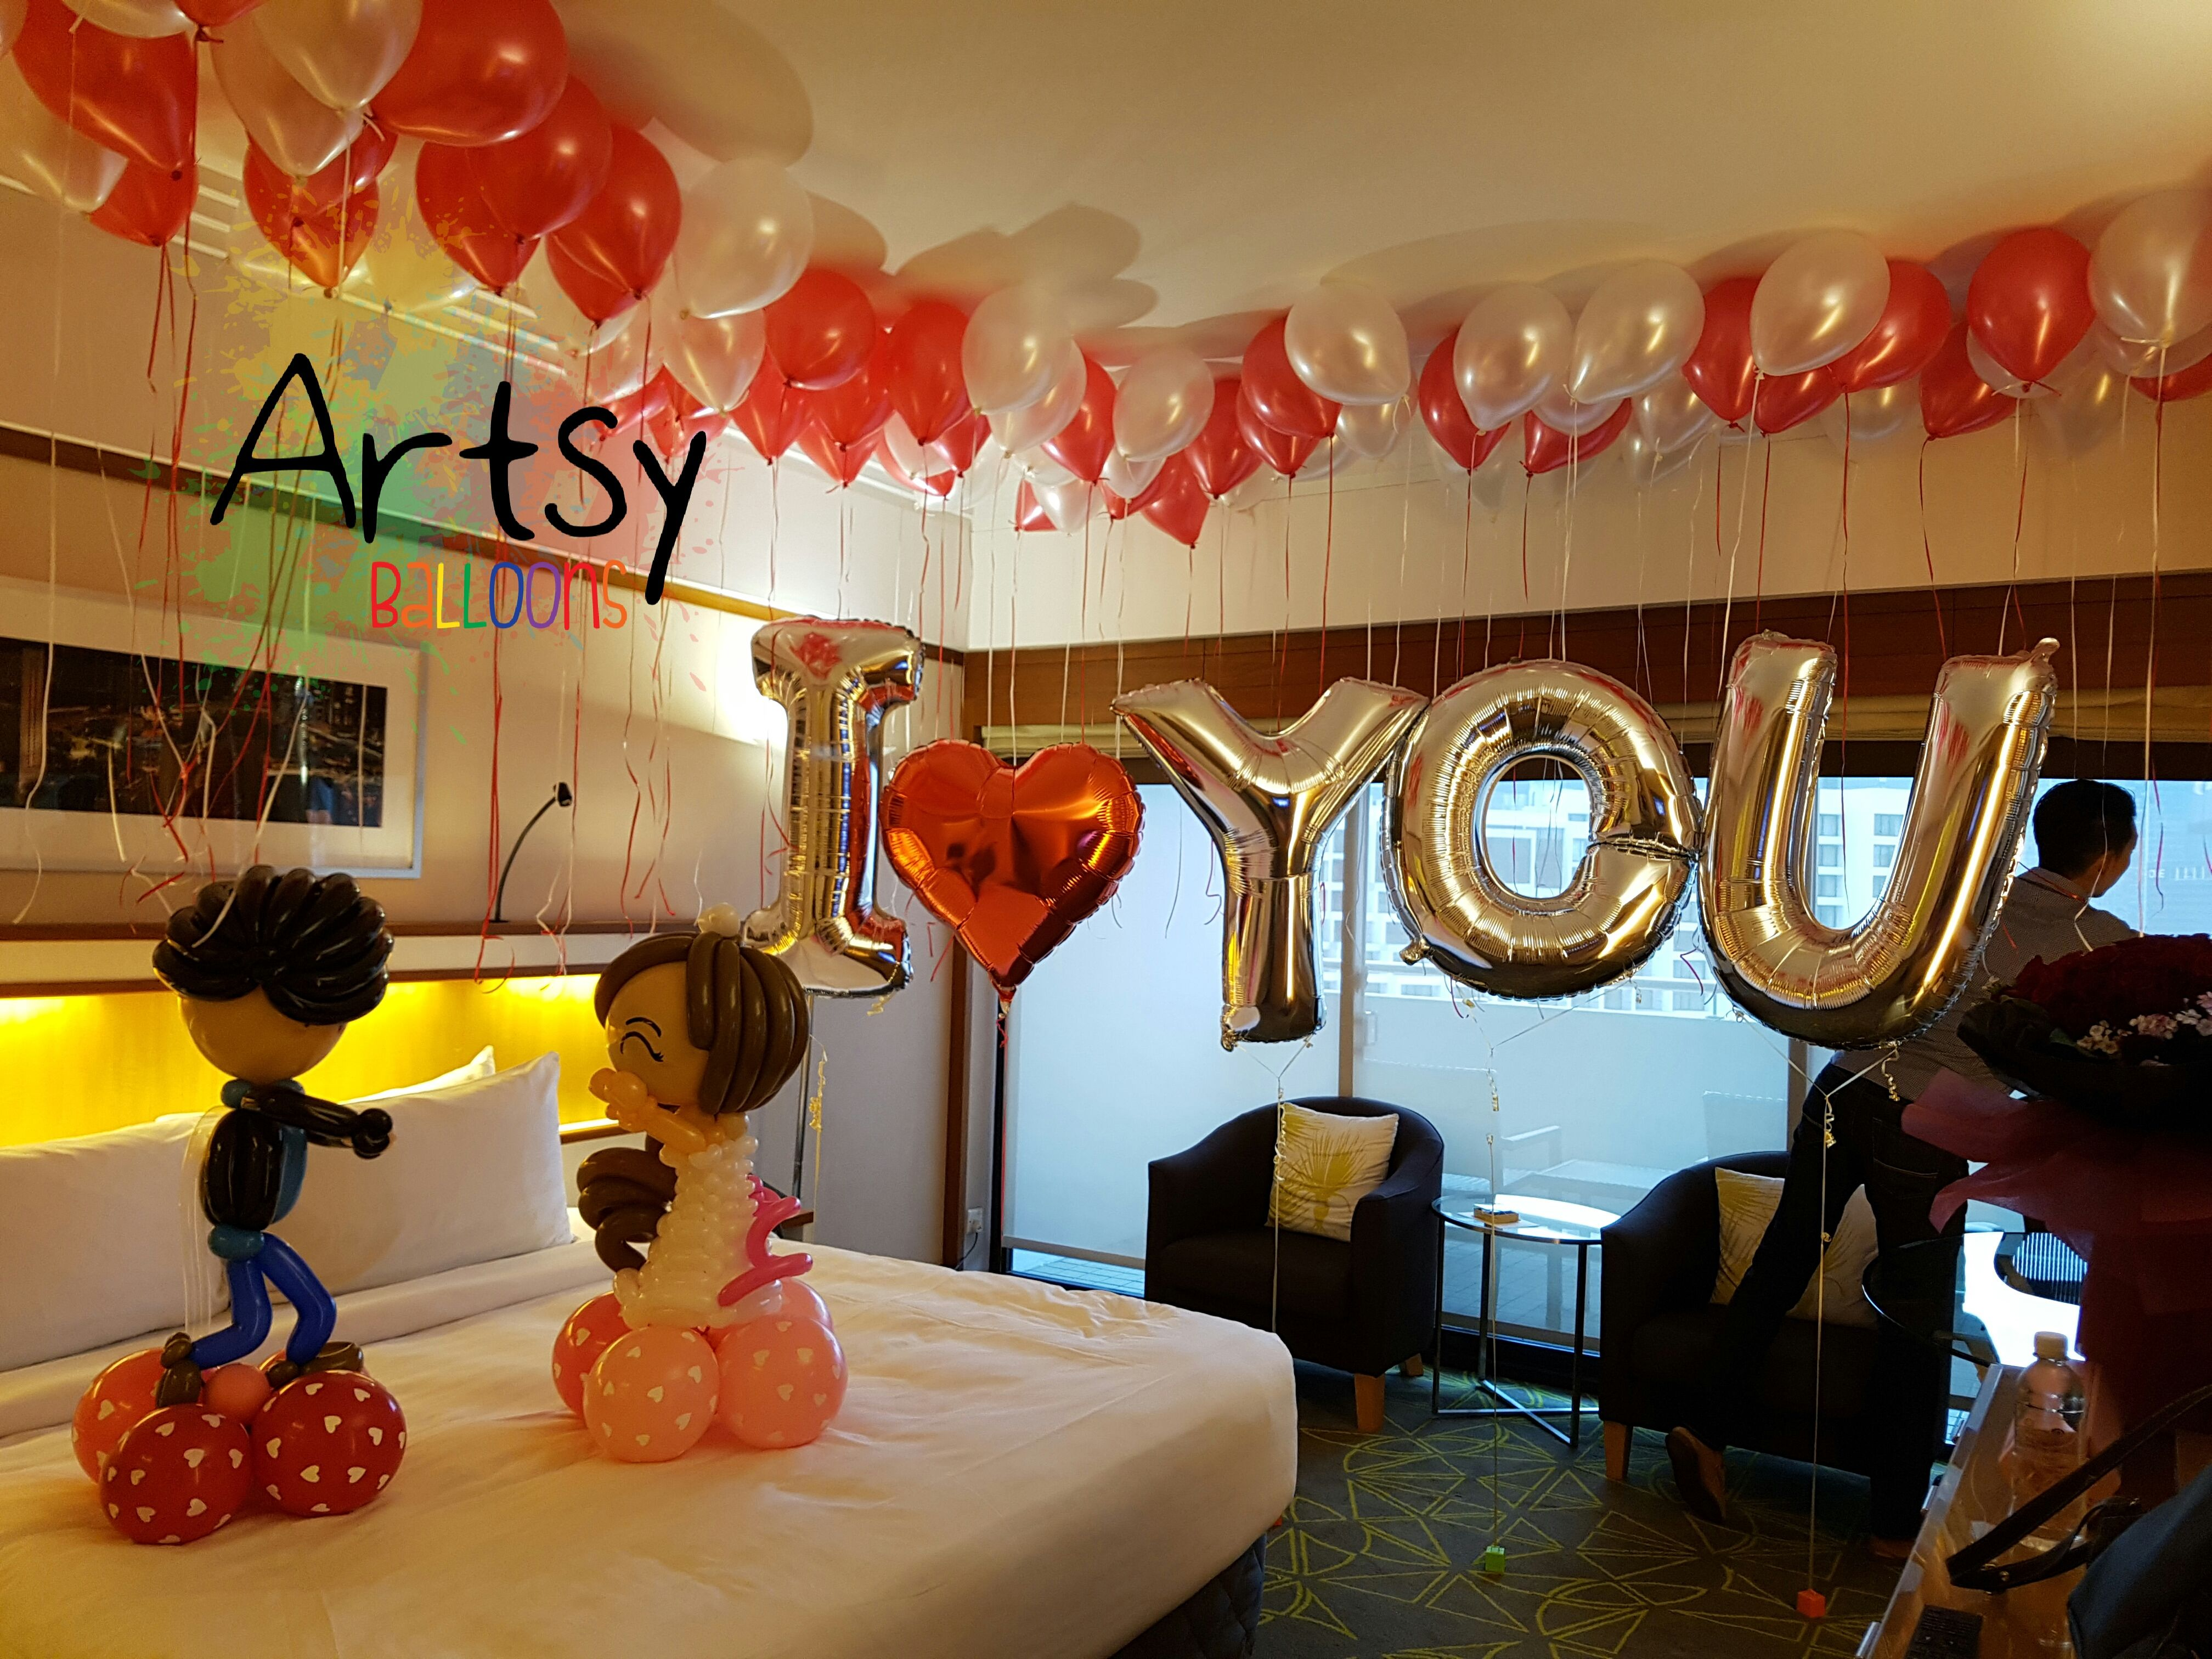 Sweet balloon proposal with balloons balloons pinterest sweet balloon proposal with balloons junglespirit Choice Image